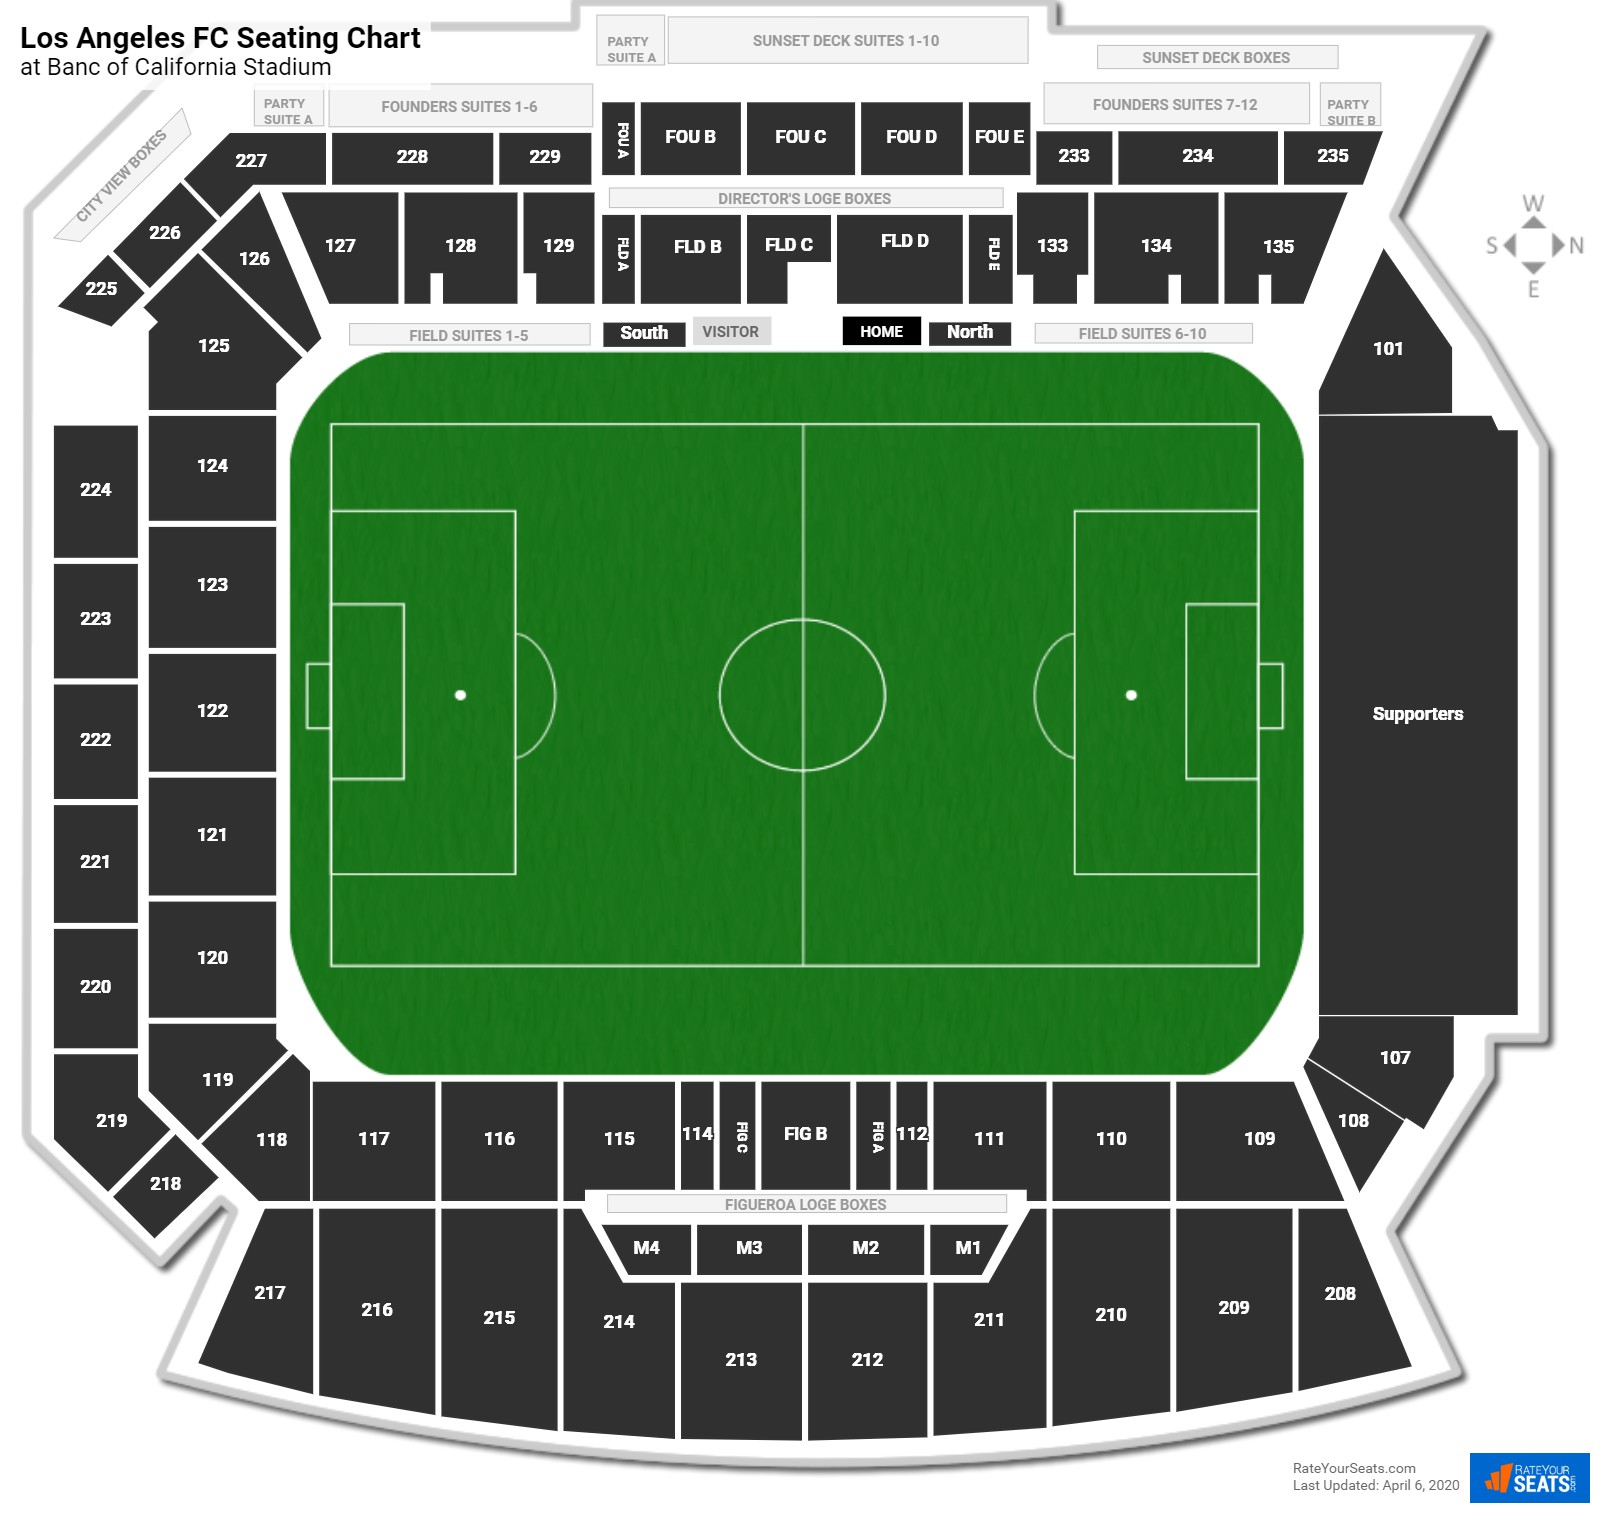 Los Angeles FC Seating Chart